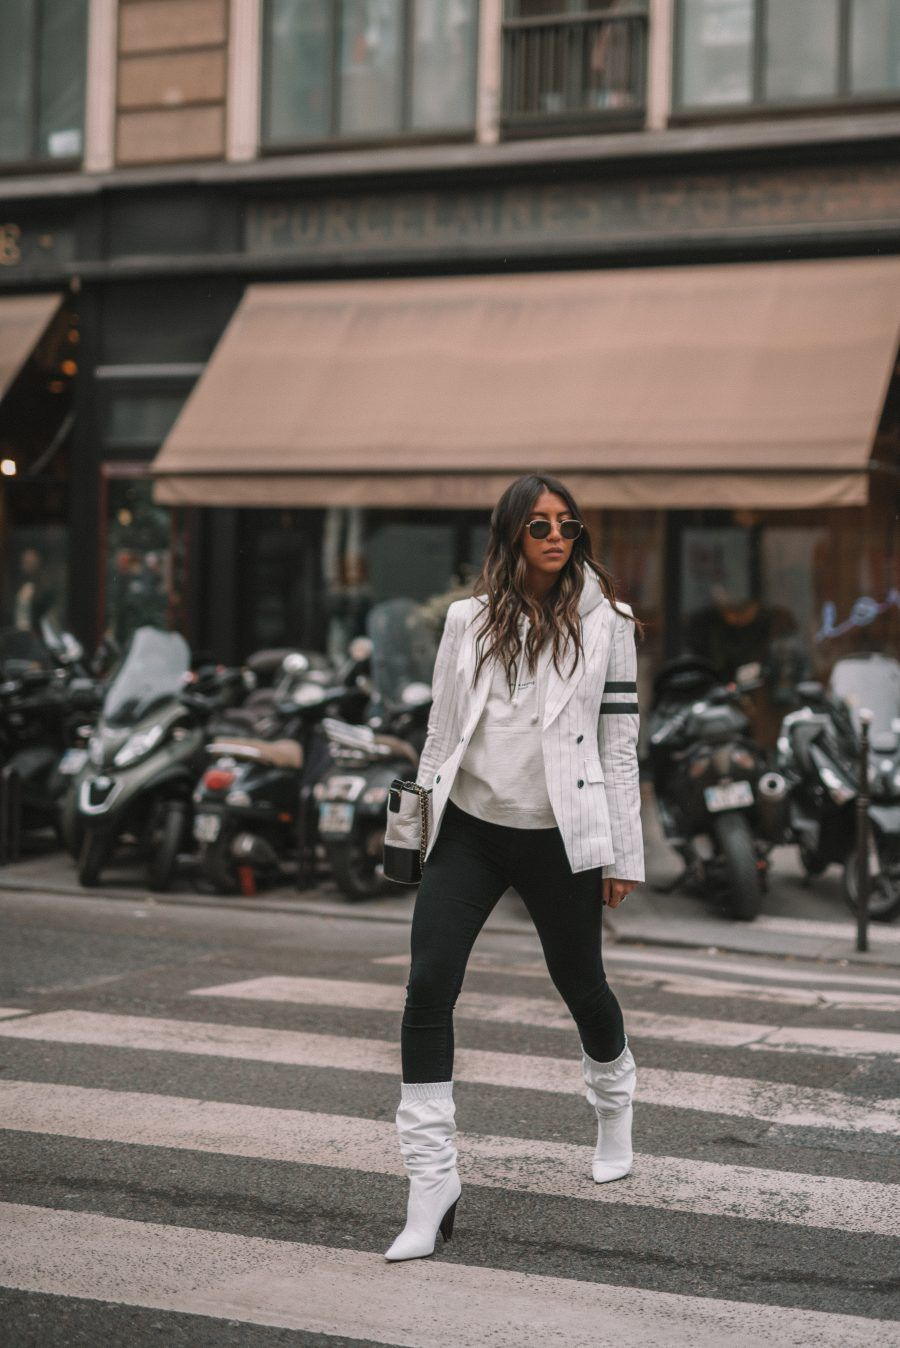 40bf1eebdf5 sosken blazer white stripe gabrielle chanel bag acne ice white hoodie  sigerson morrison white boots igk texture hair spray texture waves mane  addicts kayla ...